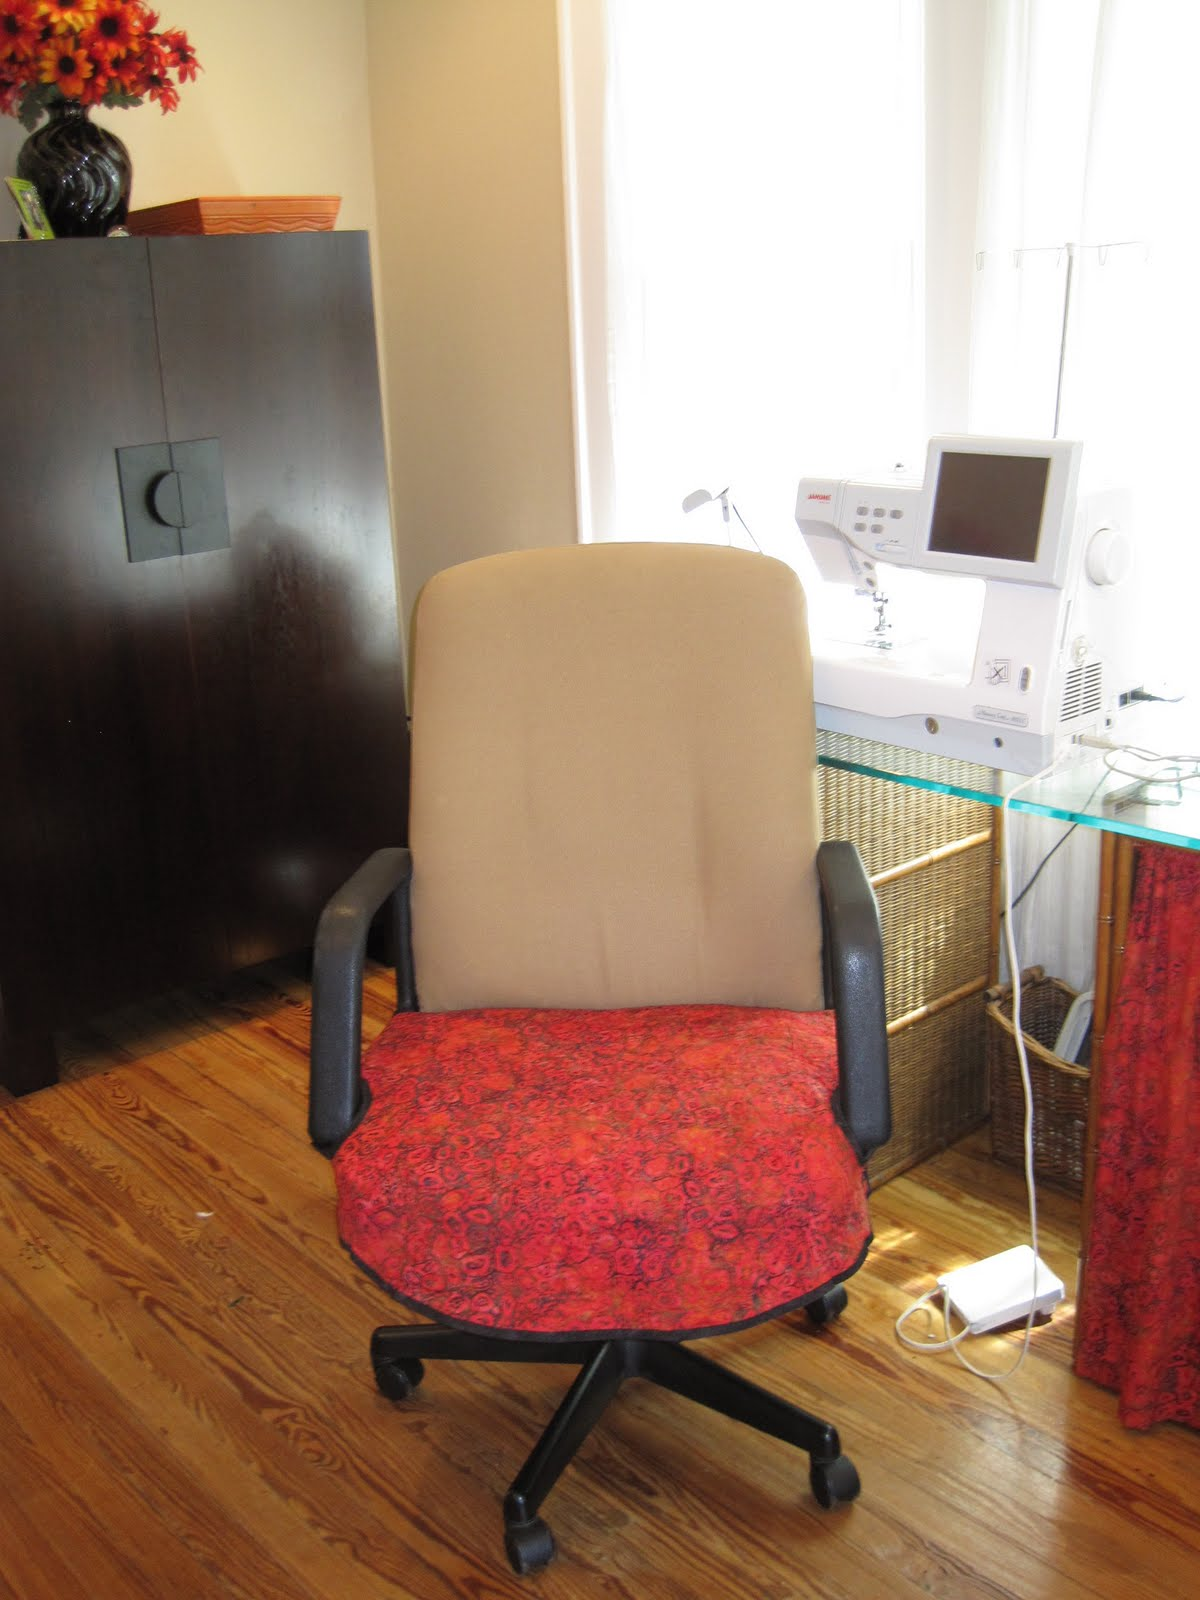 Buy Dining Chair Covers Australia Urethane Casters For Office Chairs Quilty Indulgence Covering The Sewing